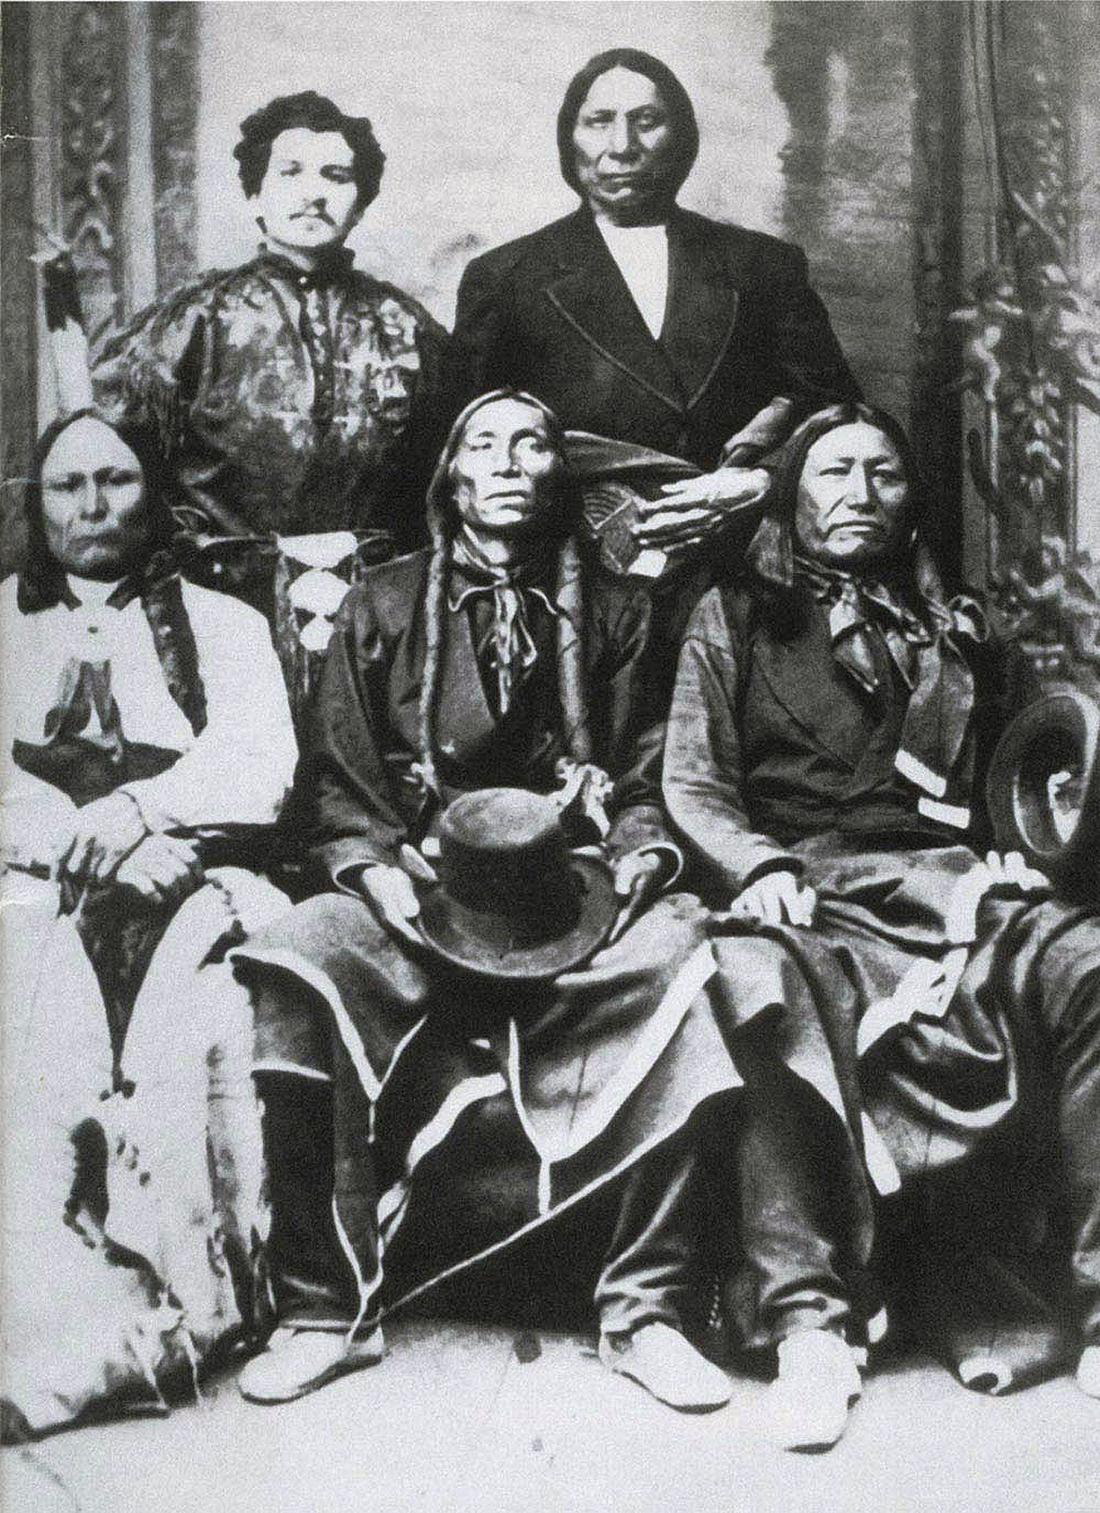 Three seated Pawnee chiefs in traditional clothing, with Mayer and another chief in a western style suit standing behind them,